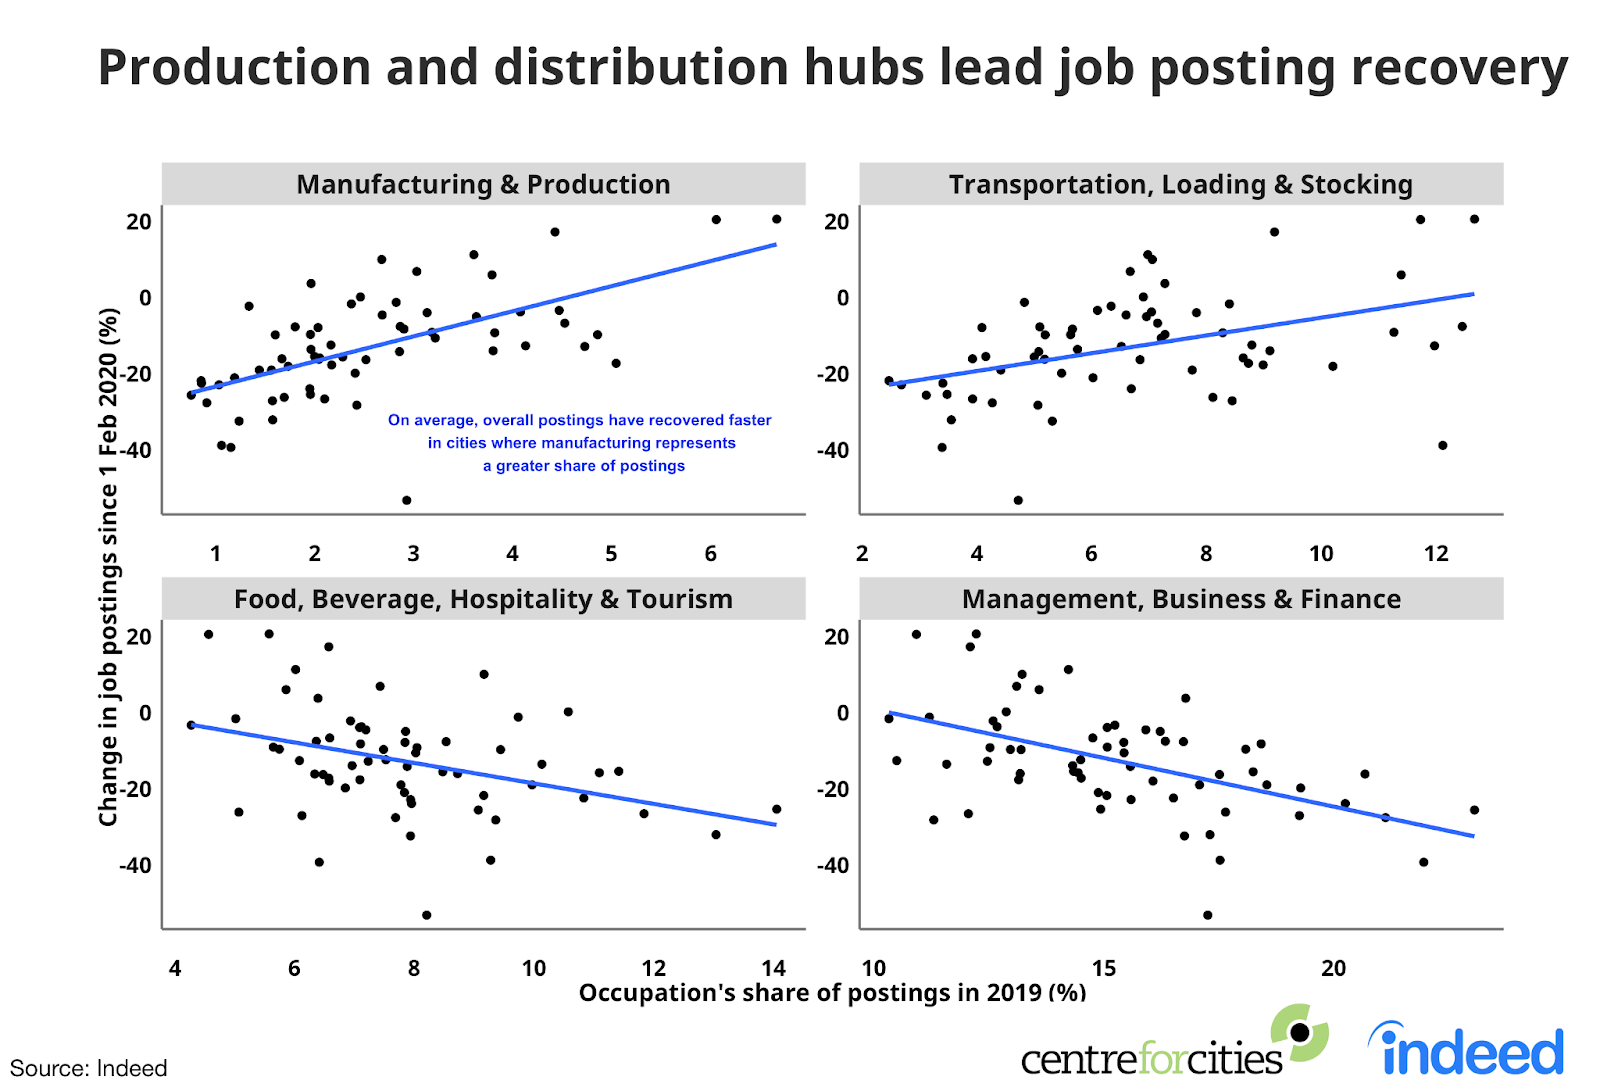 4 trend lines showing the production and distribution hubs lead job posting recovery